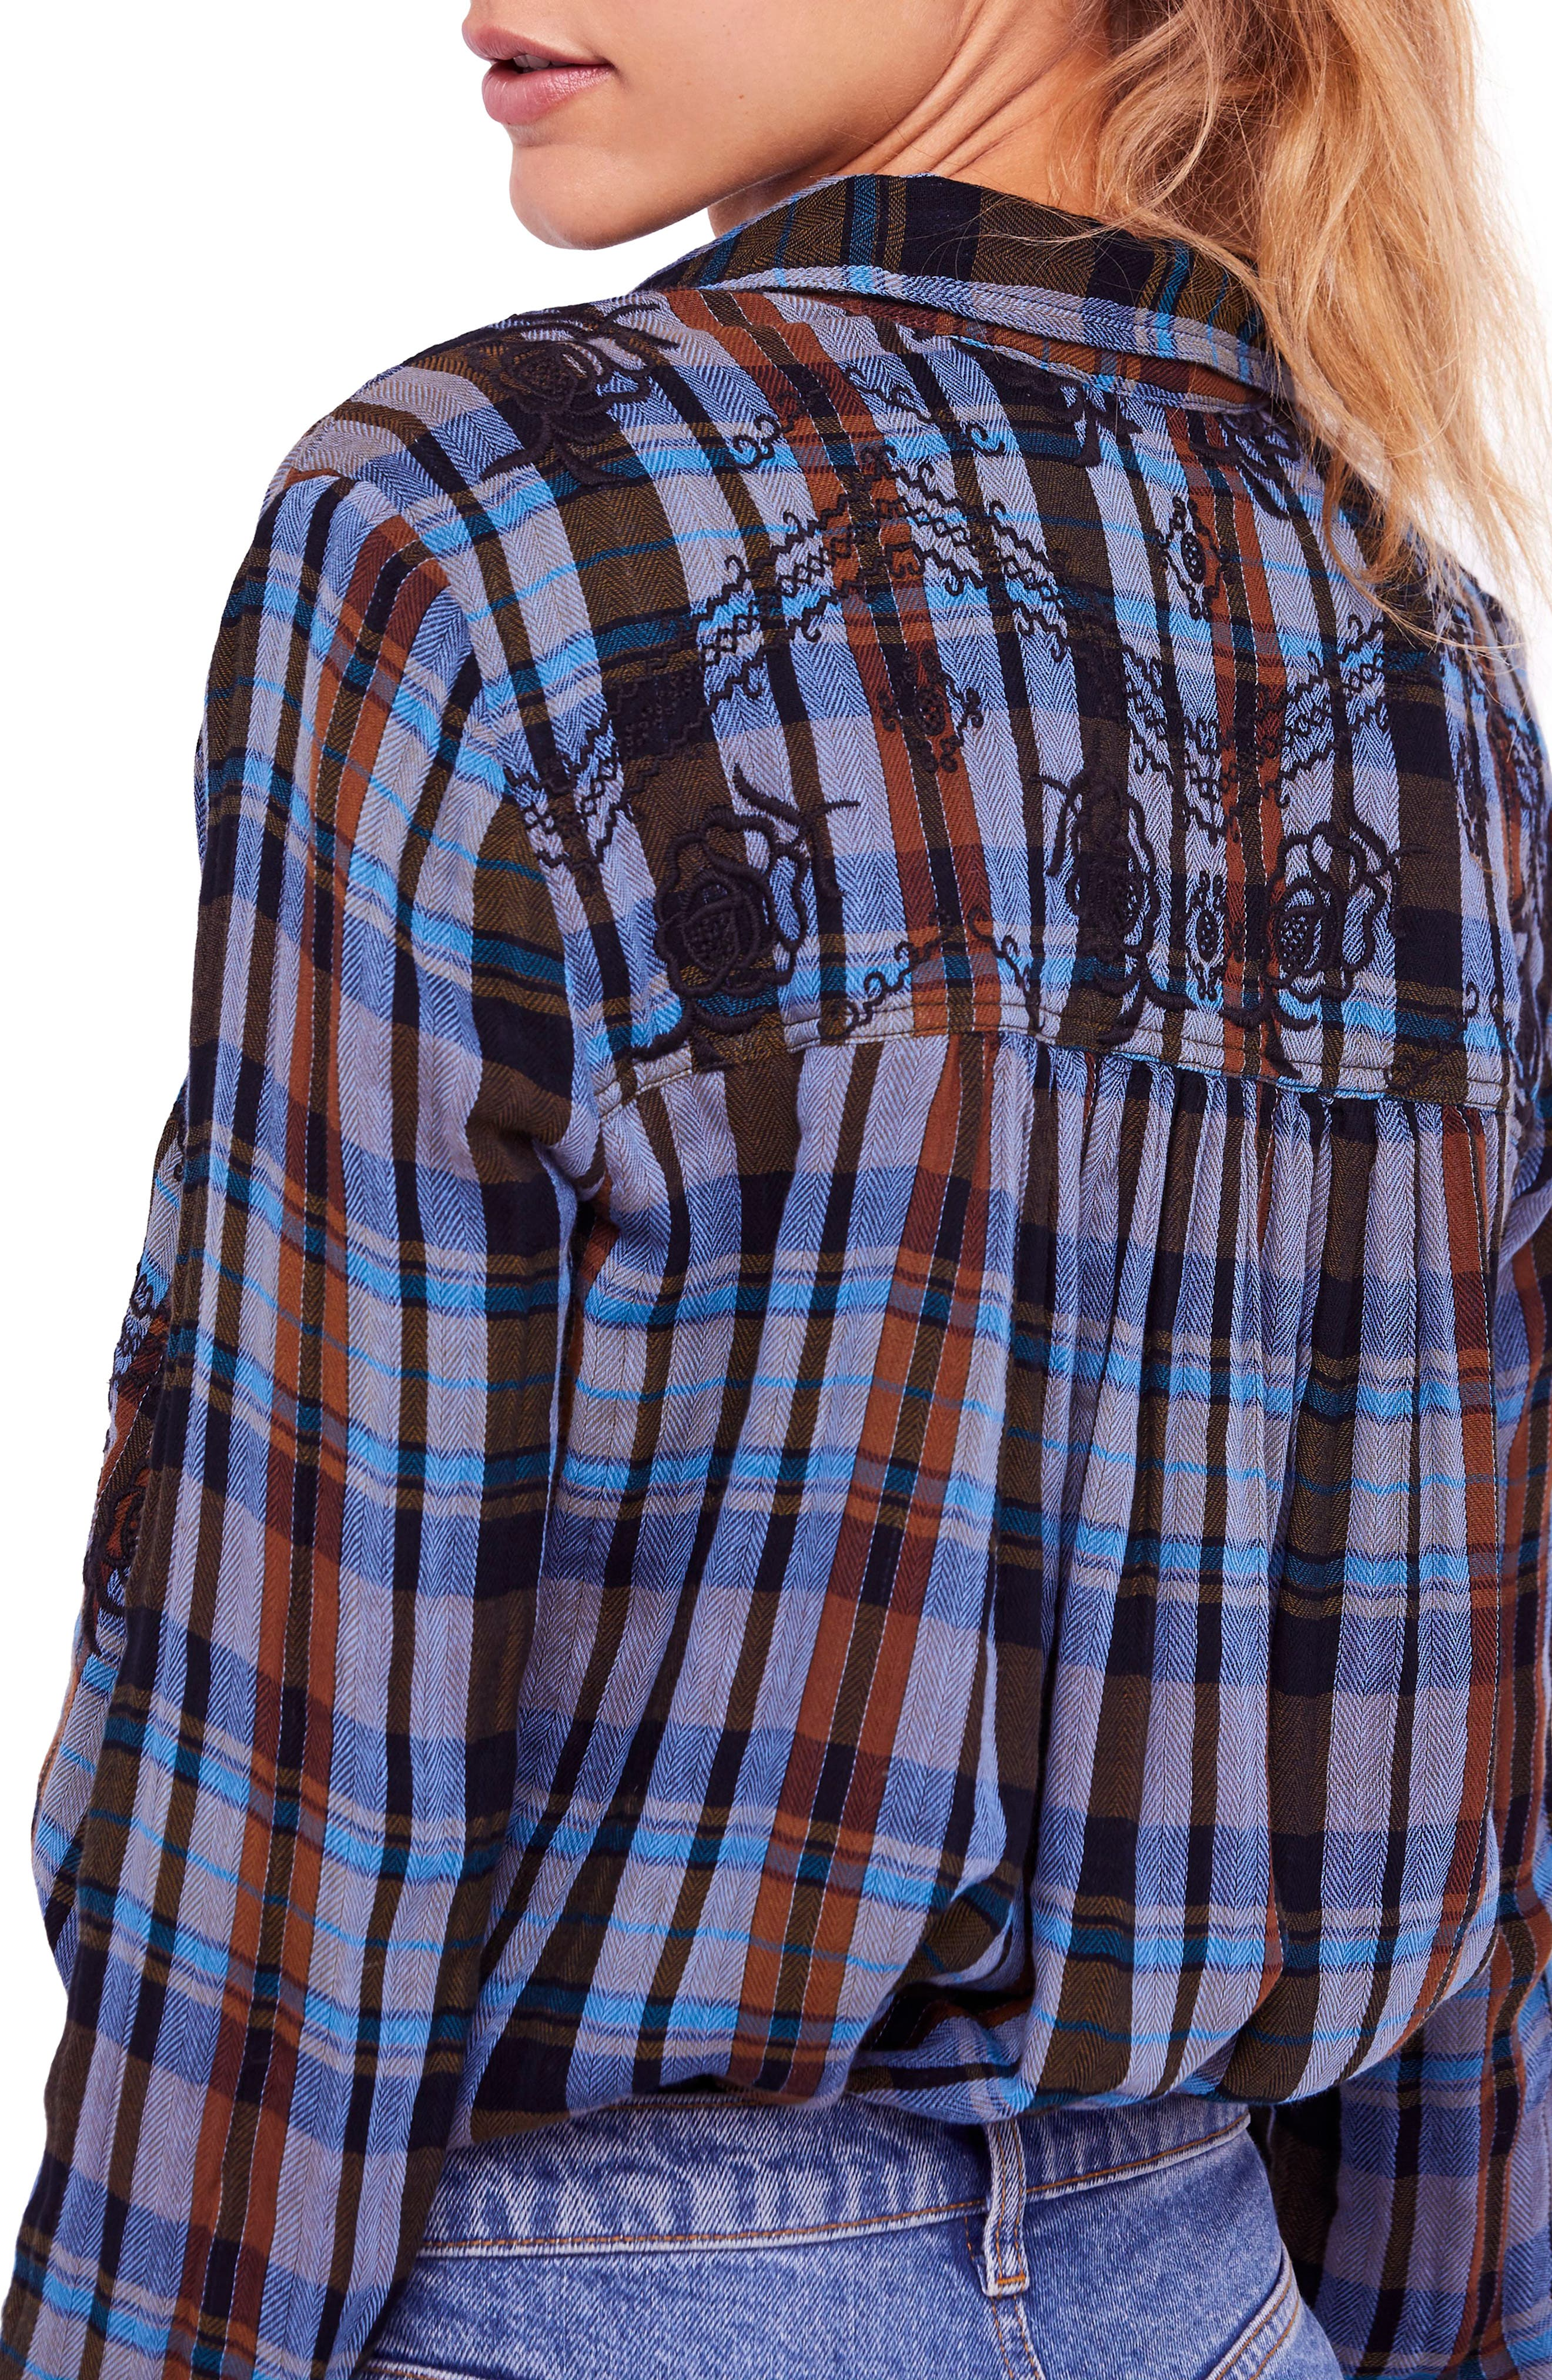 FREE PEOPLE,                             Magical Plaid Embroidered Shirt,                             Alternate thumbnail 2, color,                             001